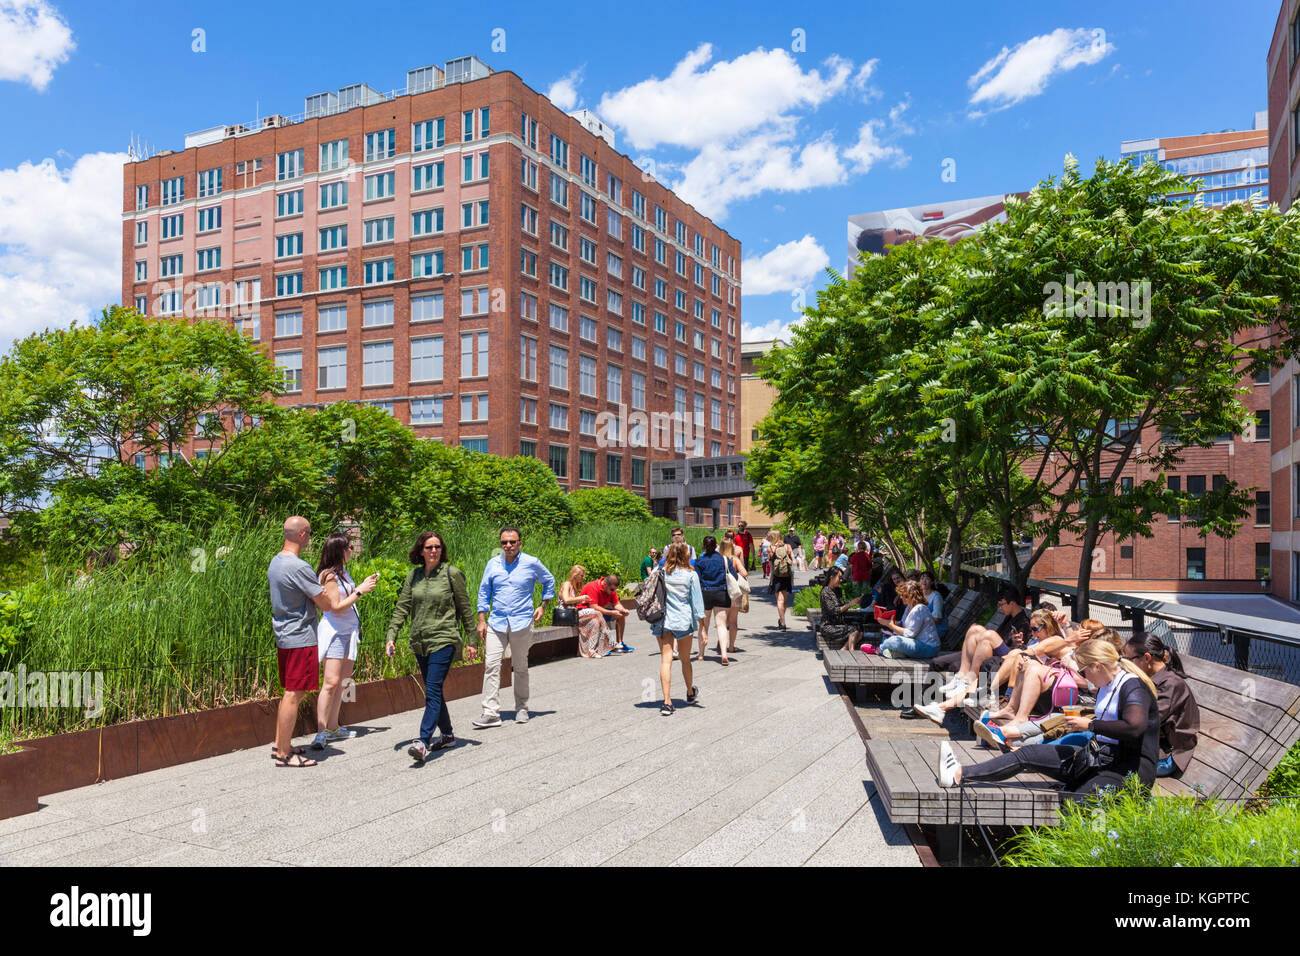 New york usa new york the high line new york urban park formed from an abandoned elevated rail line in Chelsea lower - Stock Image